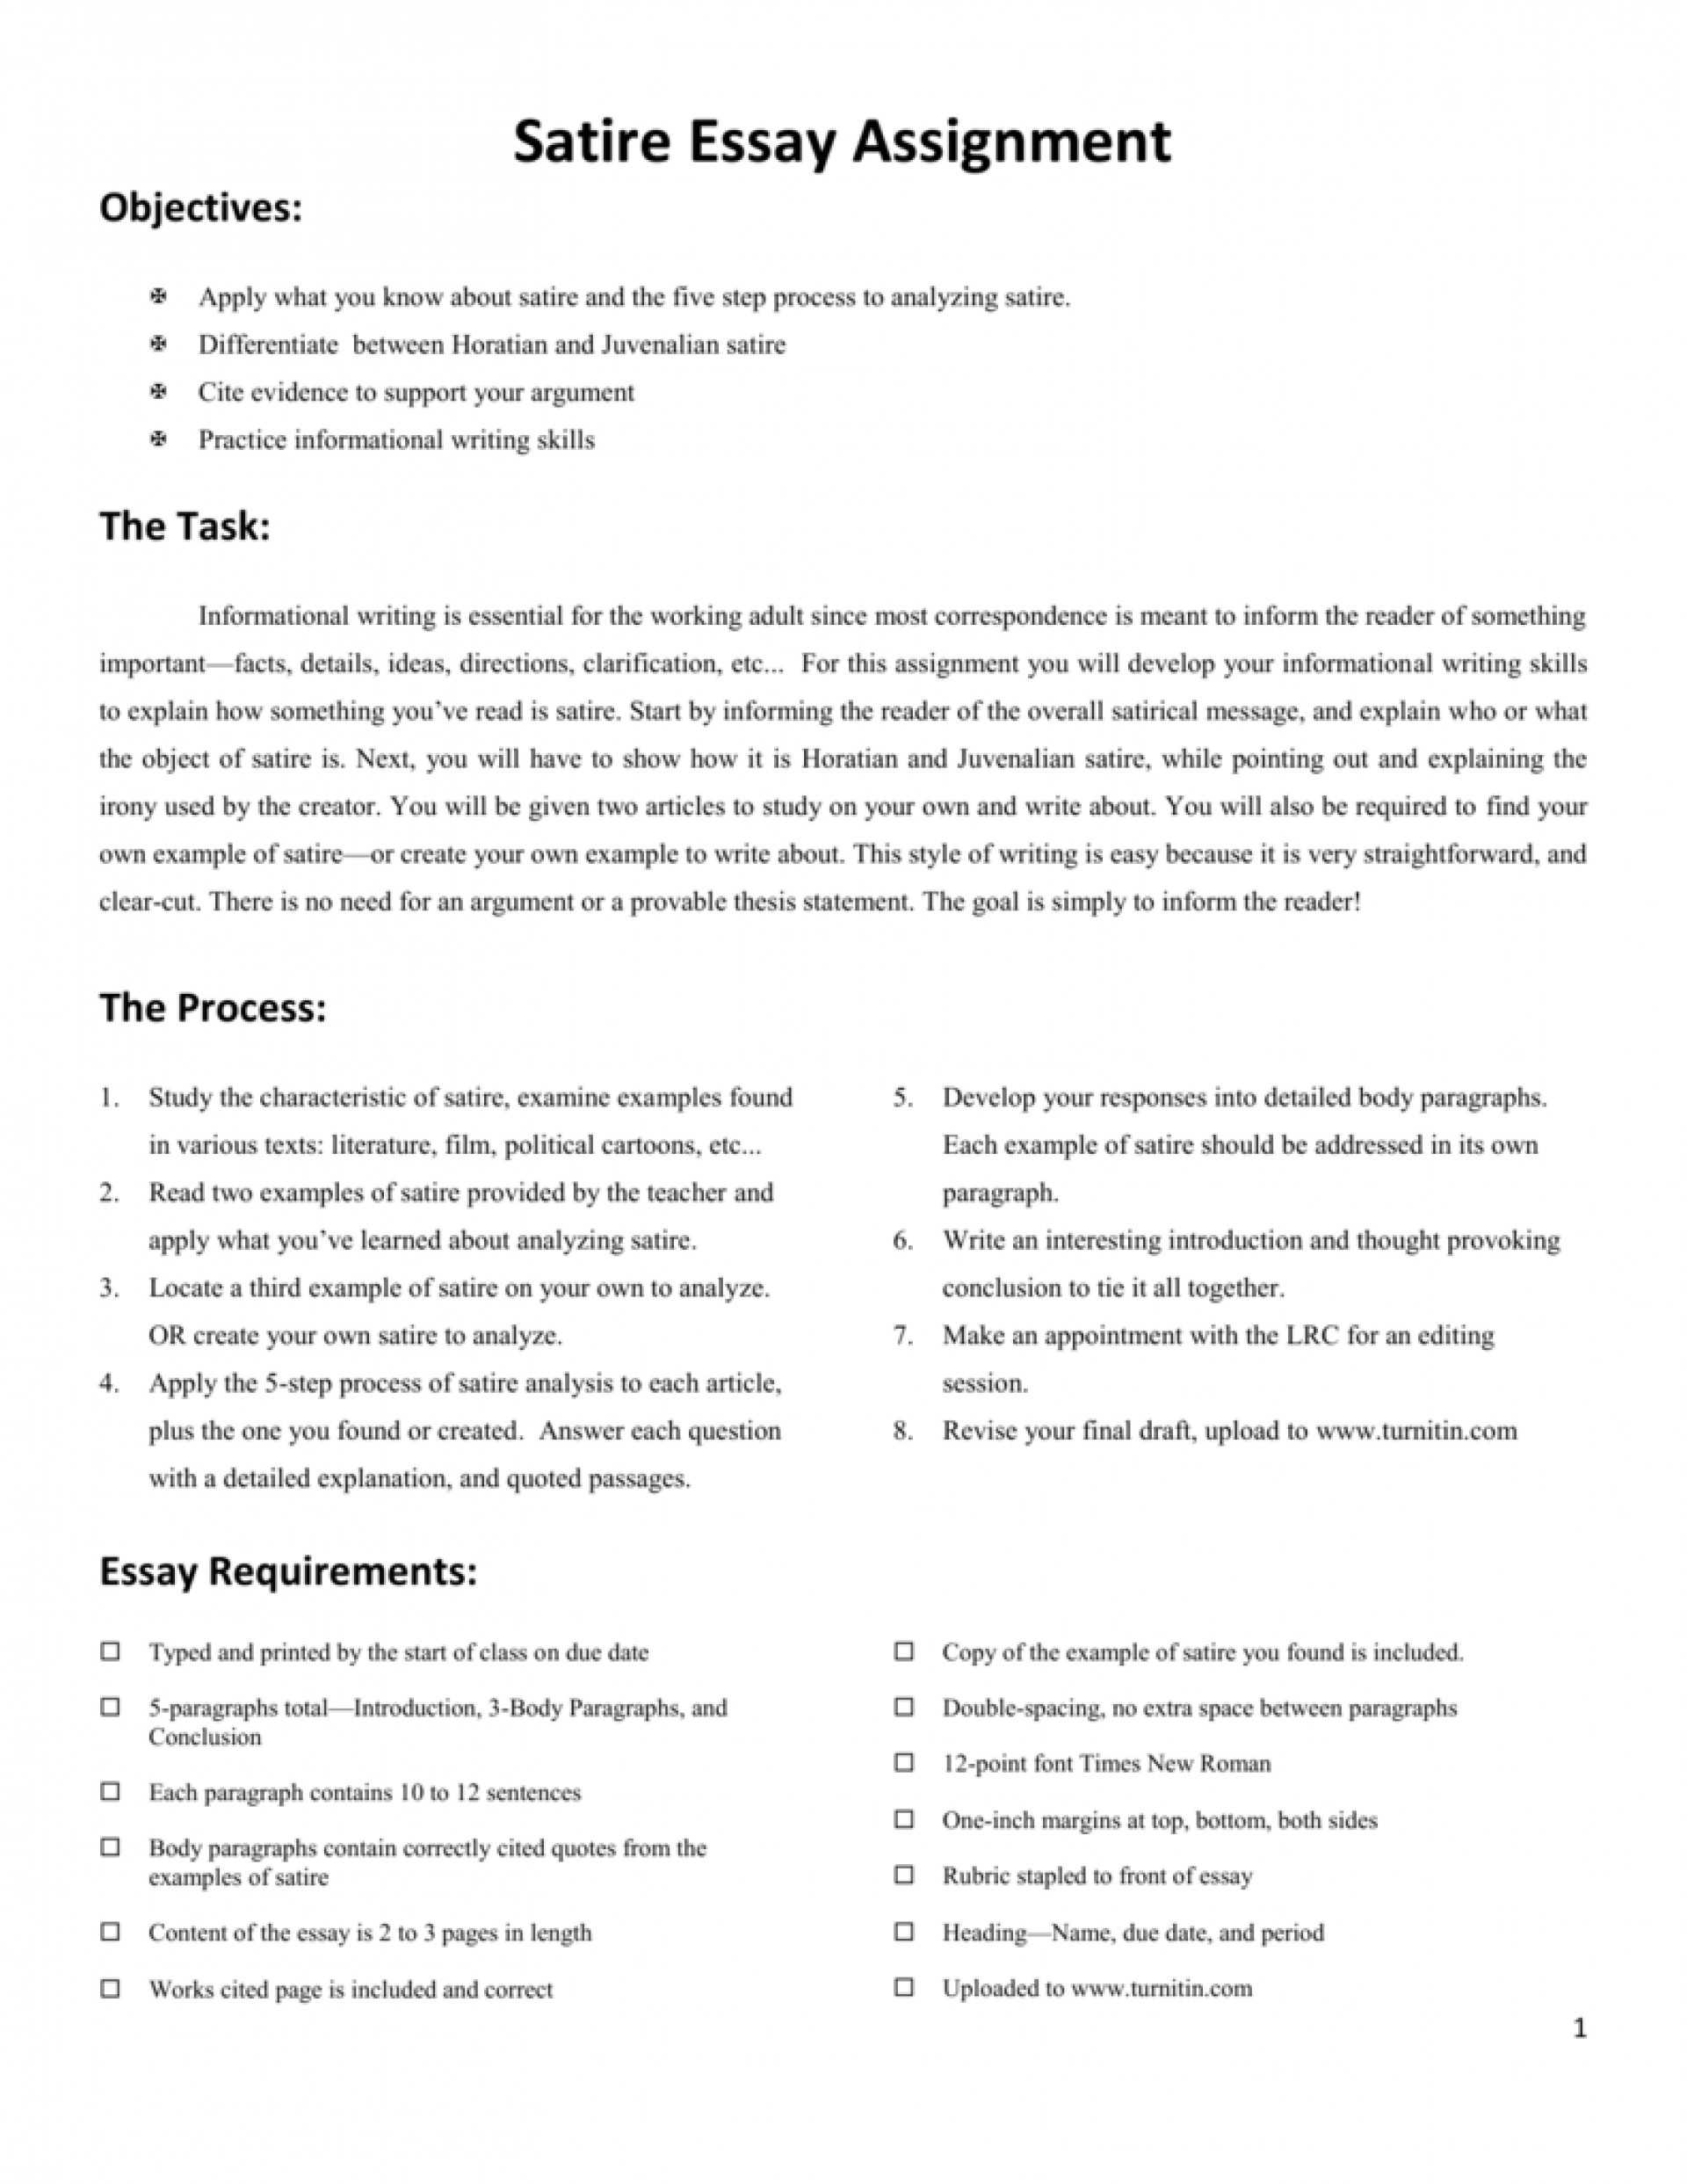 022 Satire Essays 006798123 2 Excellent Essay Examples On Bullying Love 1920